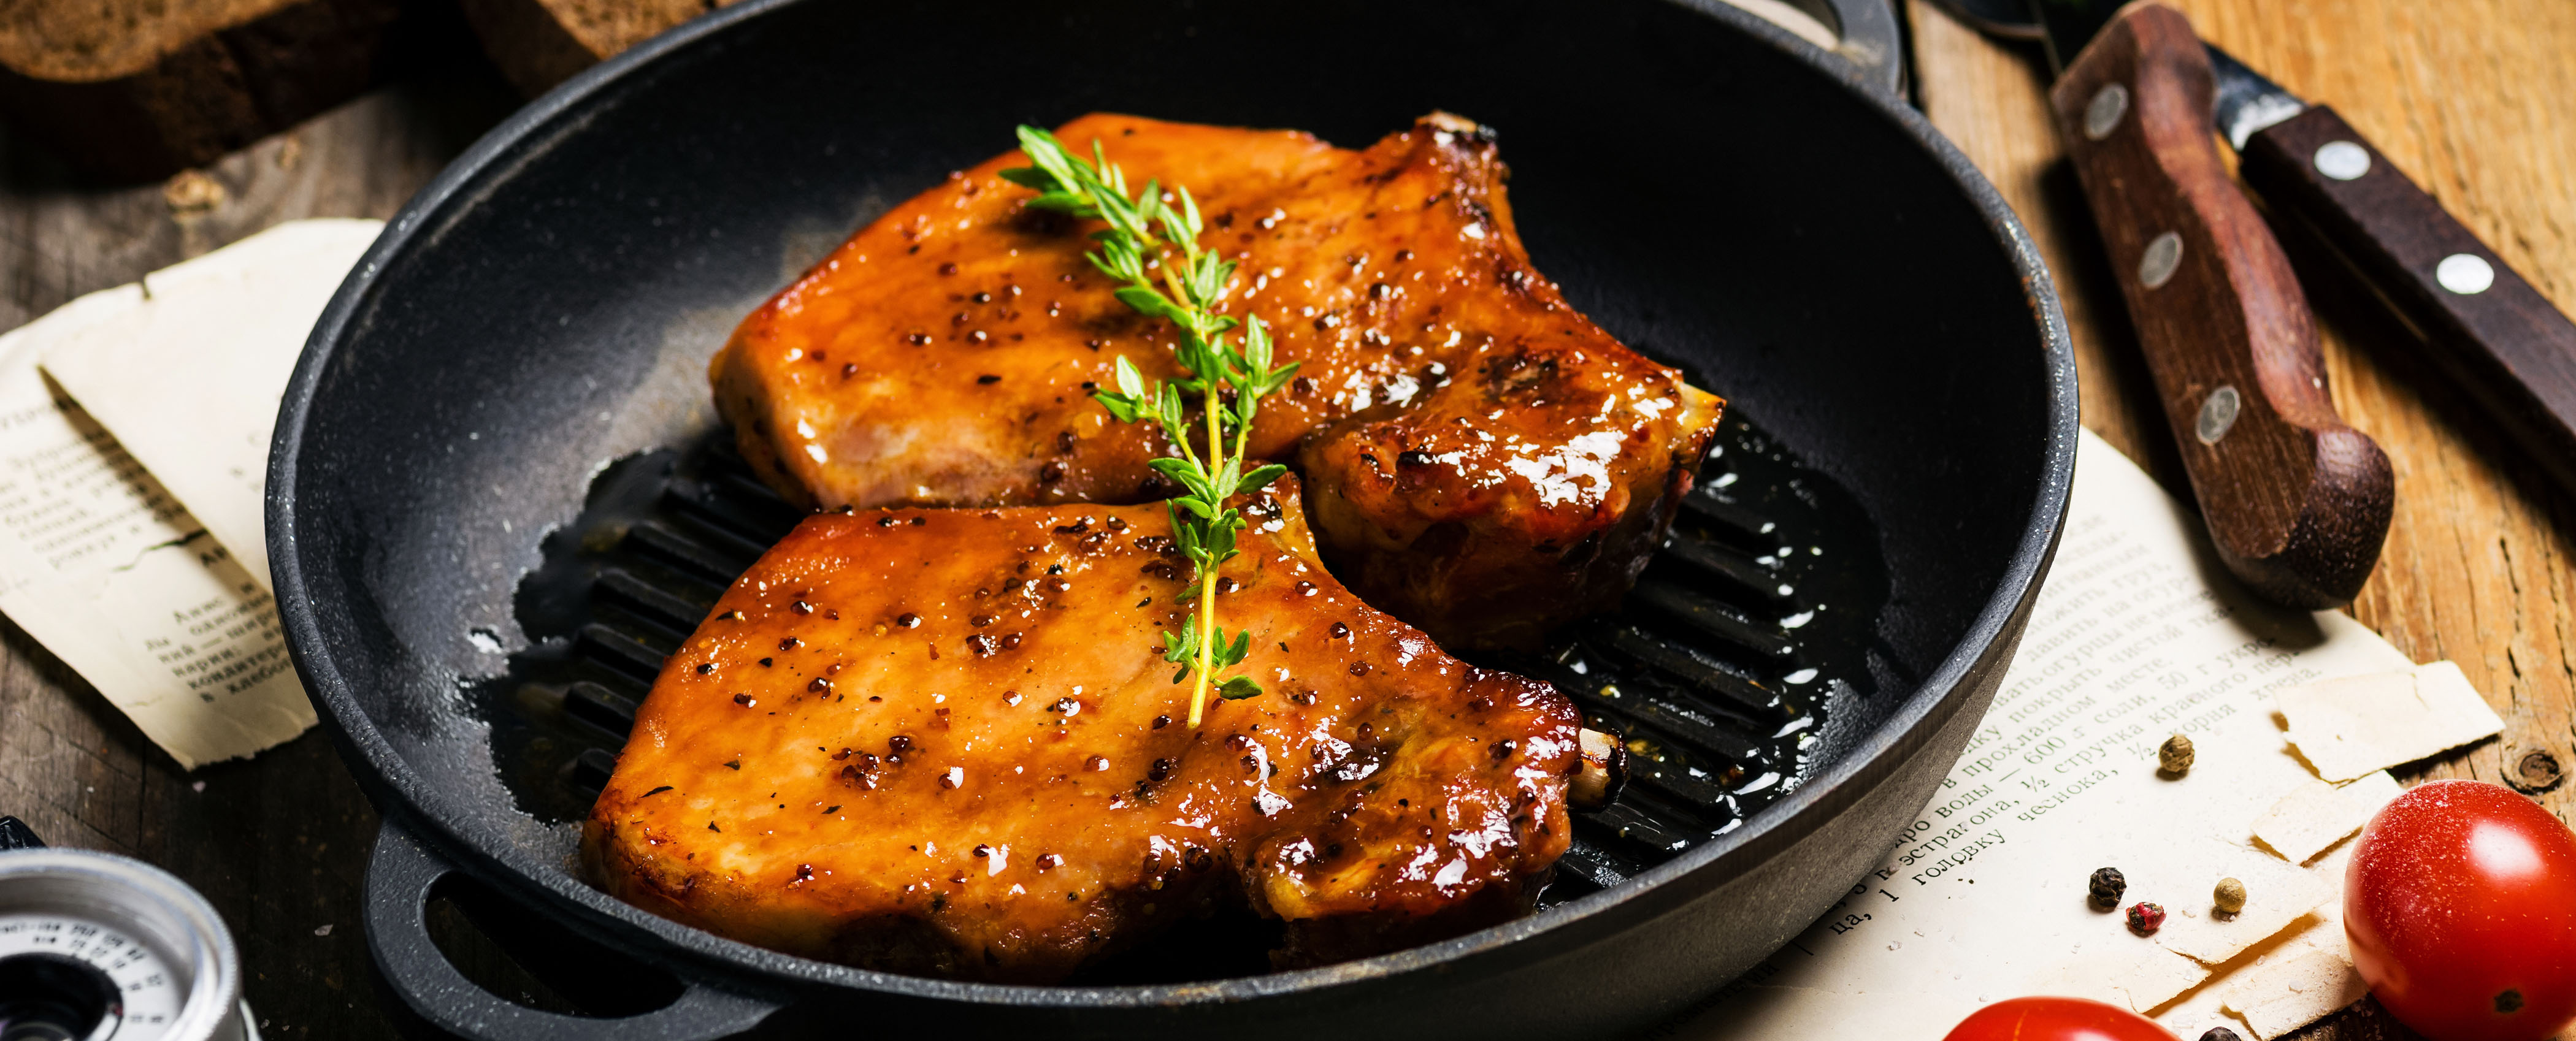 Tangy Glazed Pork Chop